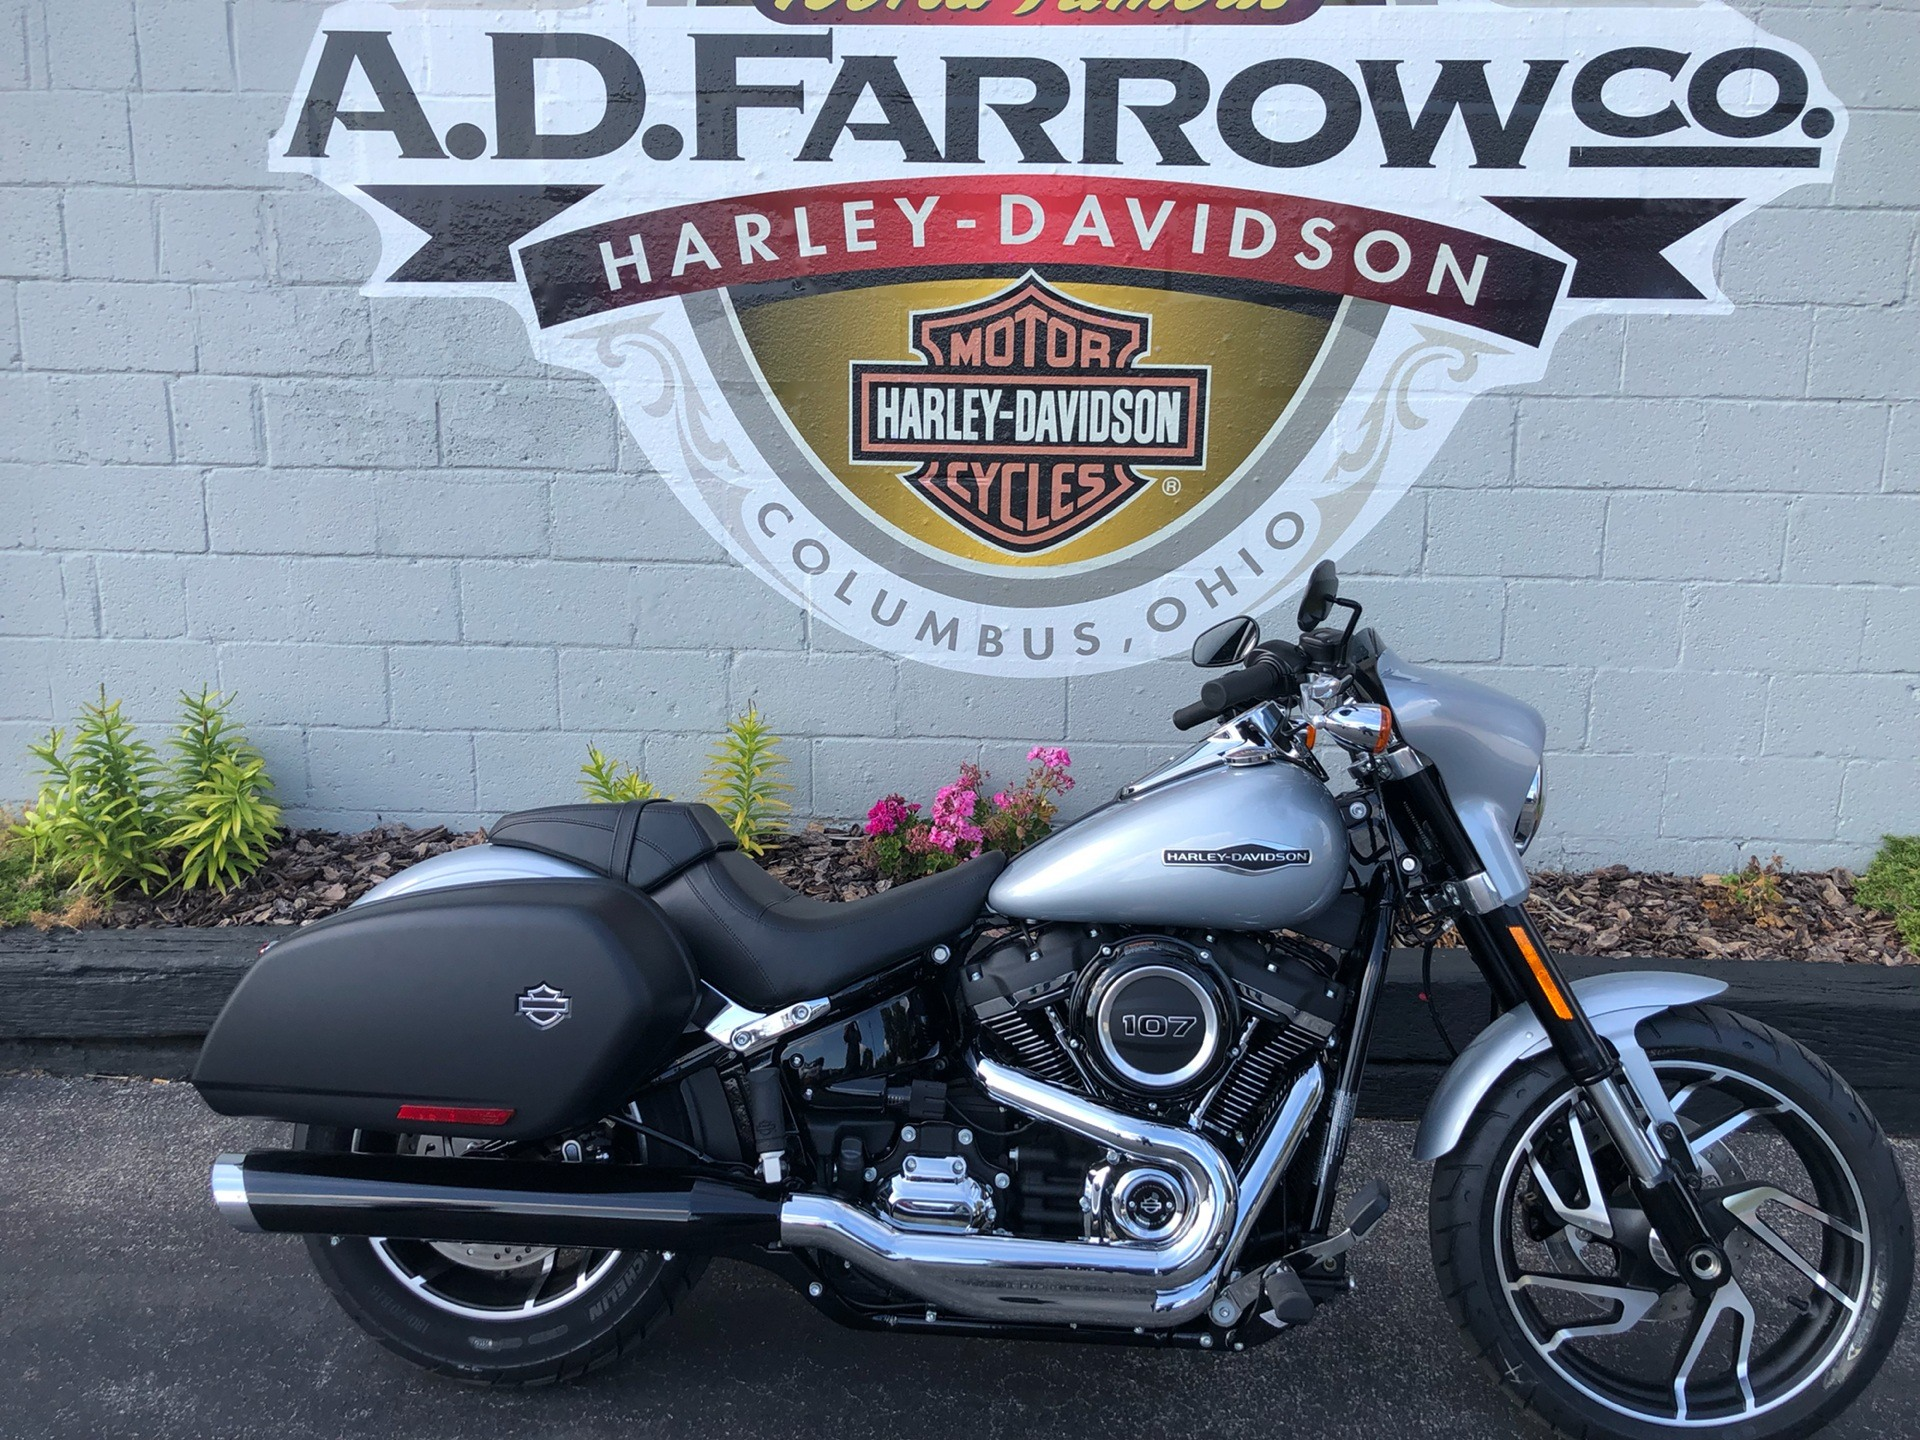 2019 Harley-Davidson FLSB in Sunbury, Ohio - Photo 1